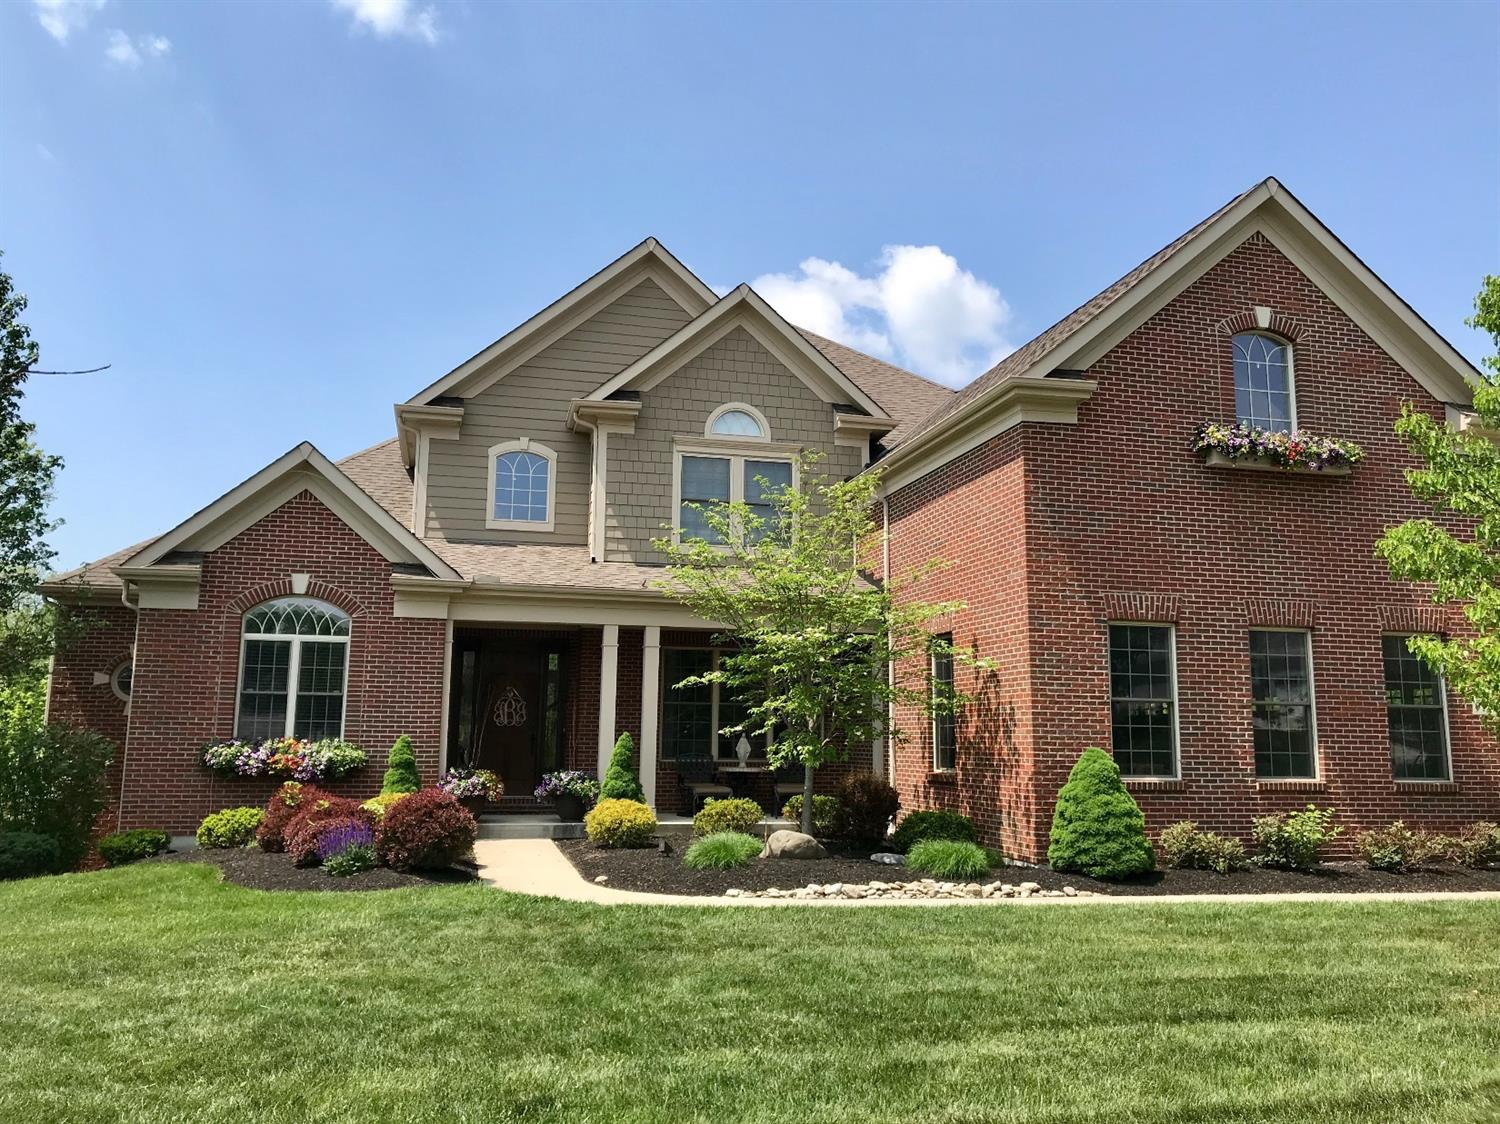 9155 Geromes Wy Symmes Twp., OH